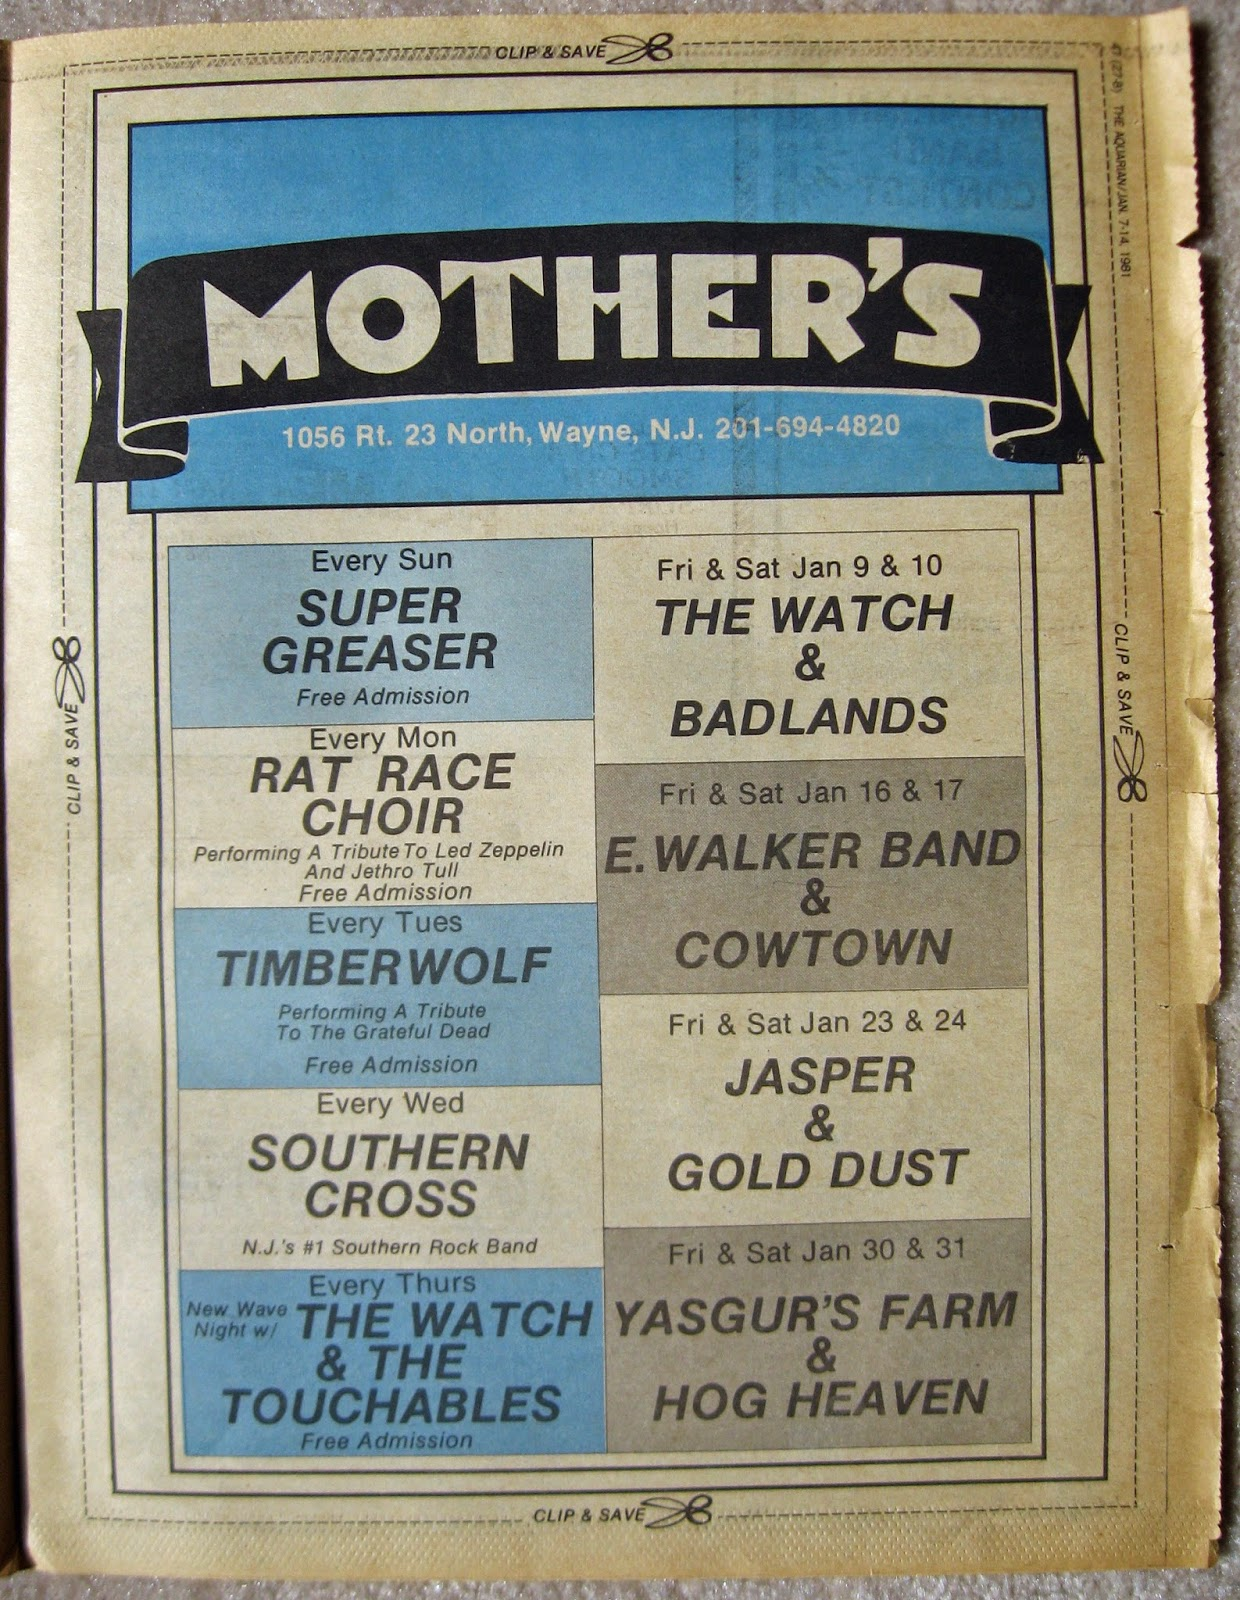 Mother's band line up January 1981